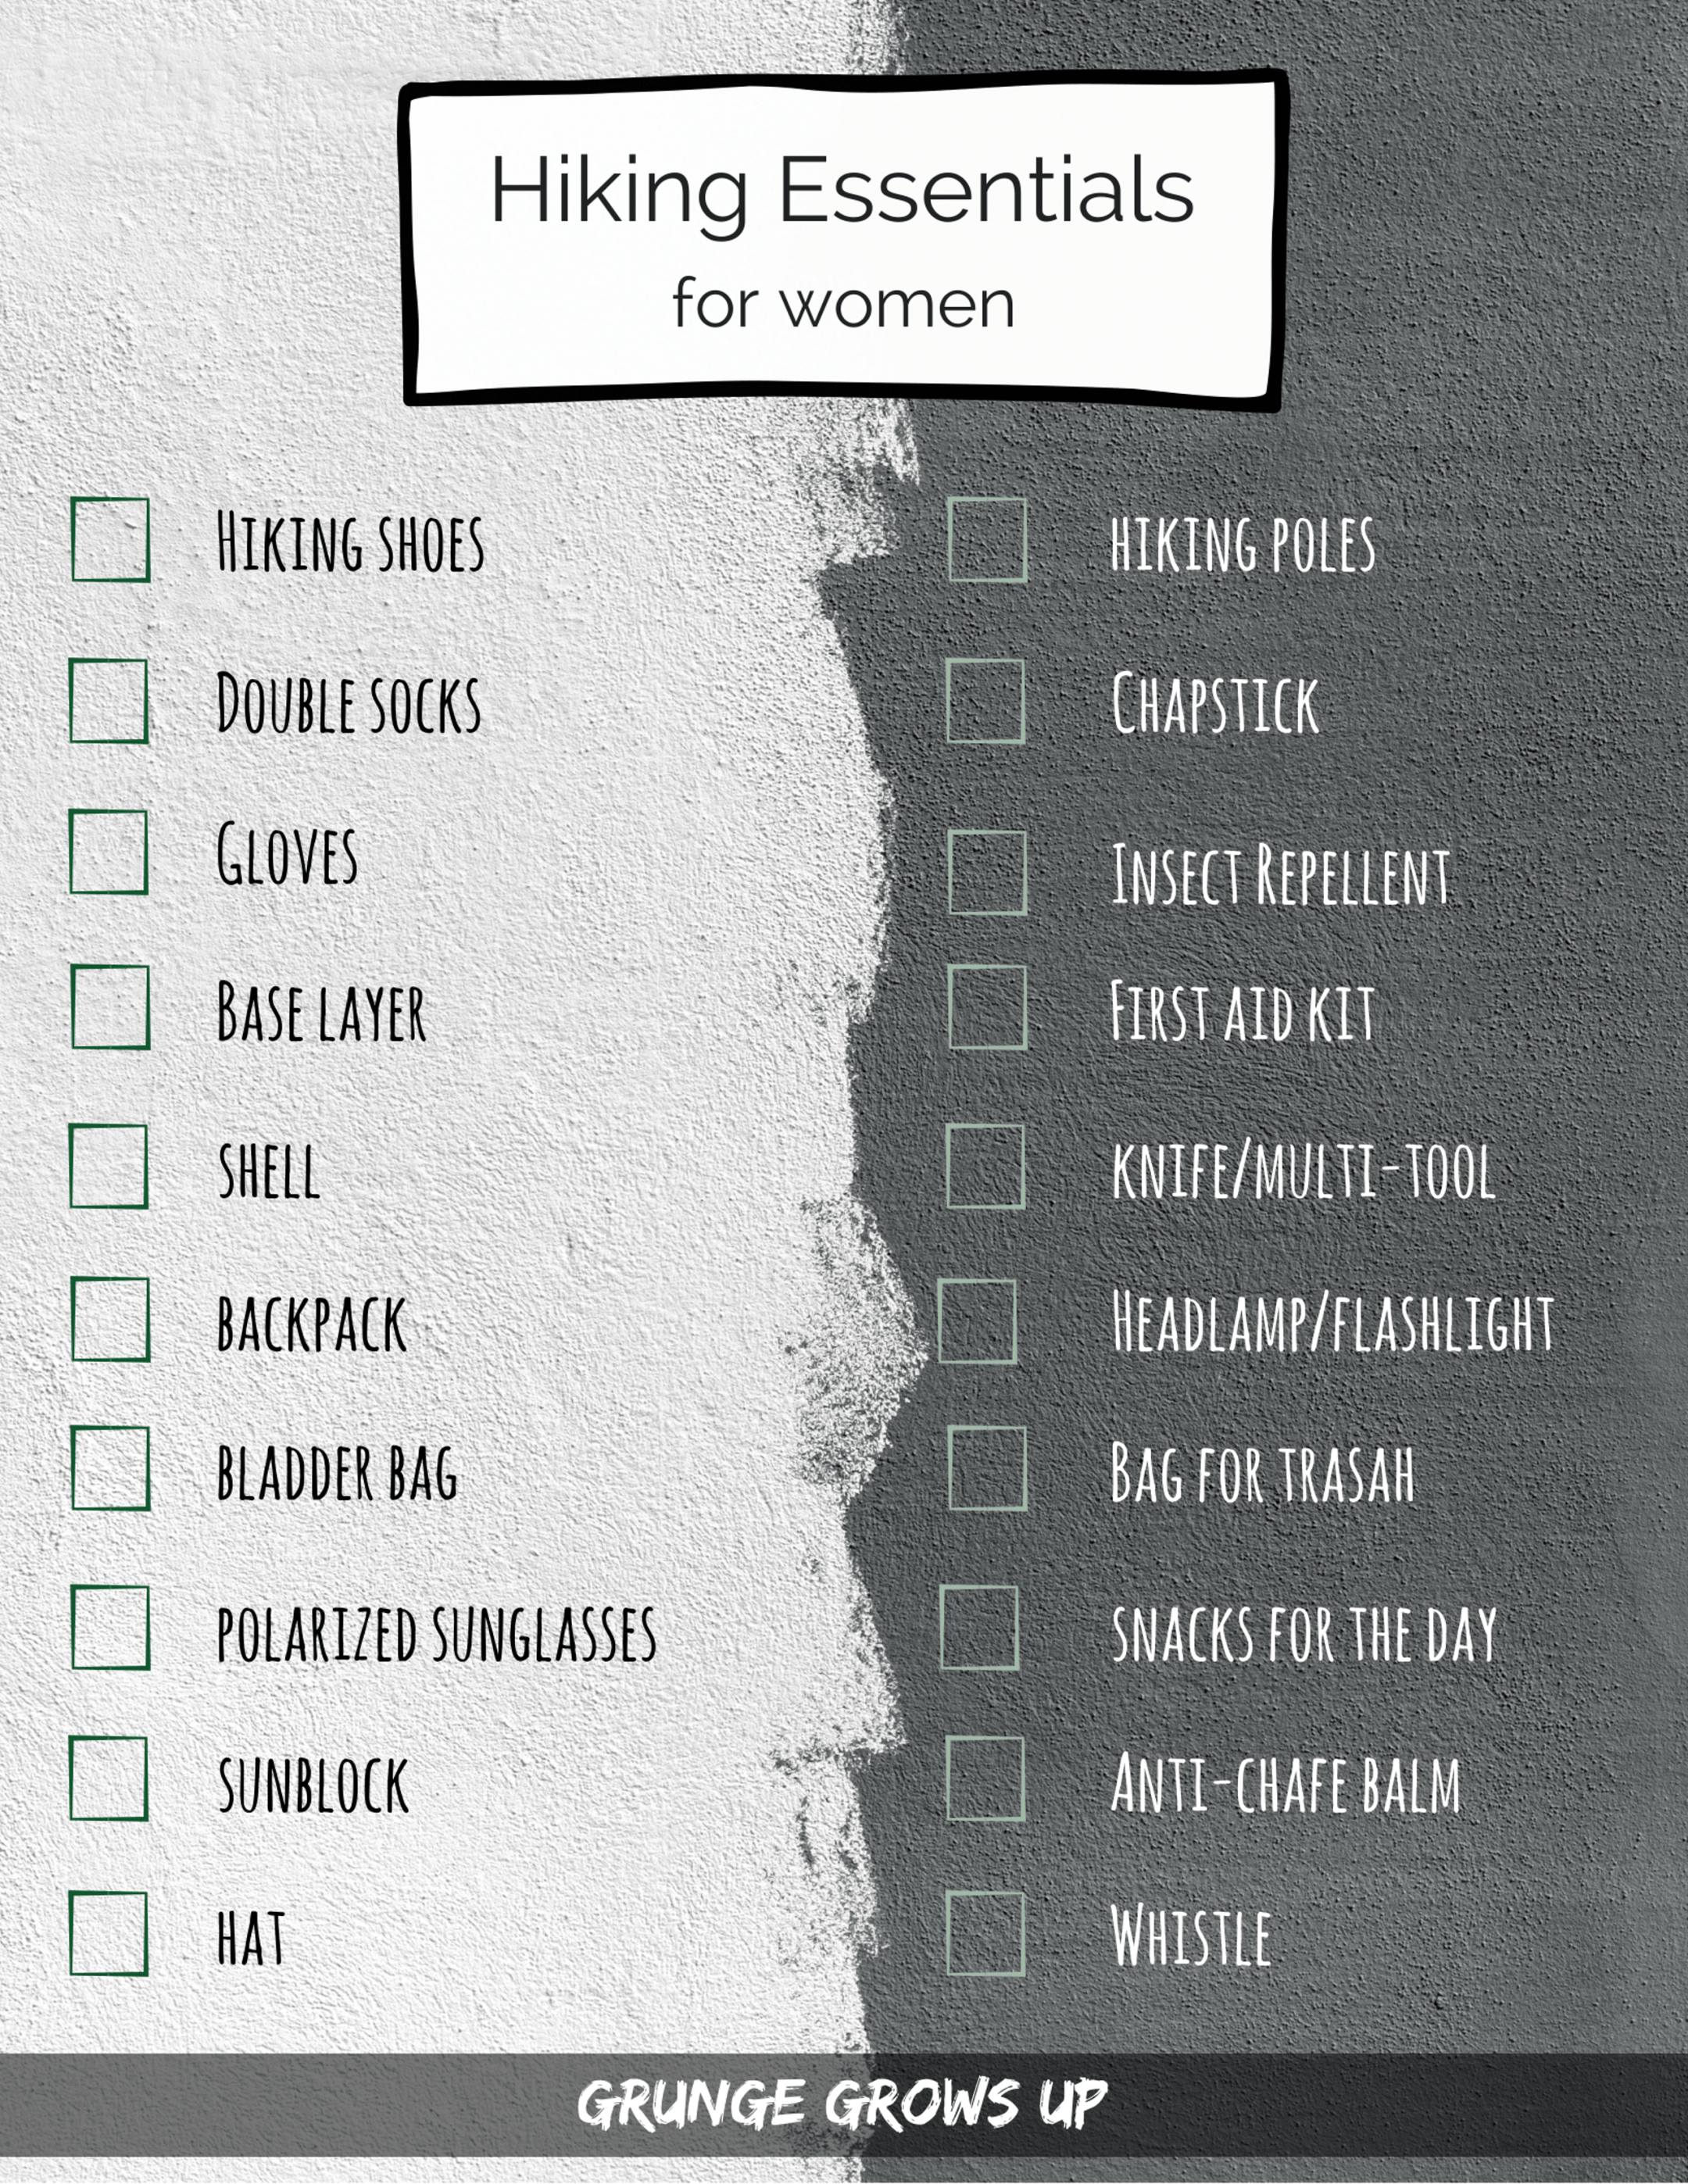 Day Hiking Essentials for Woman with Hiking Gear Checklist